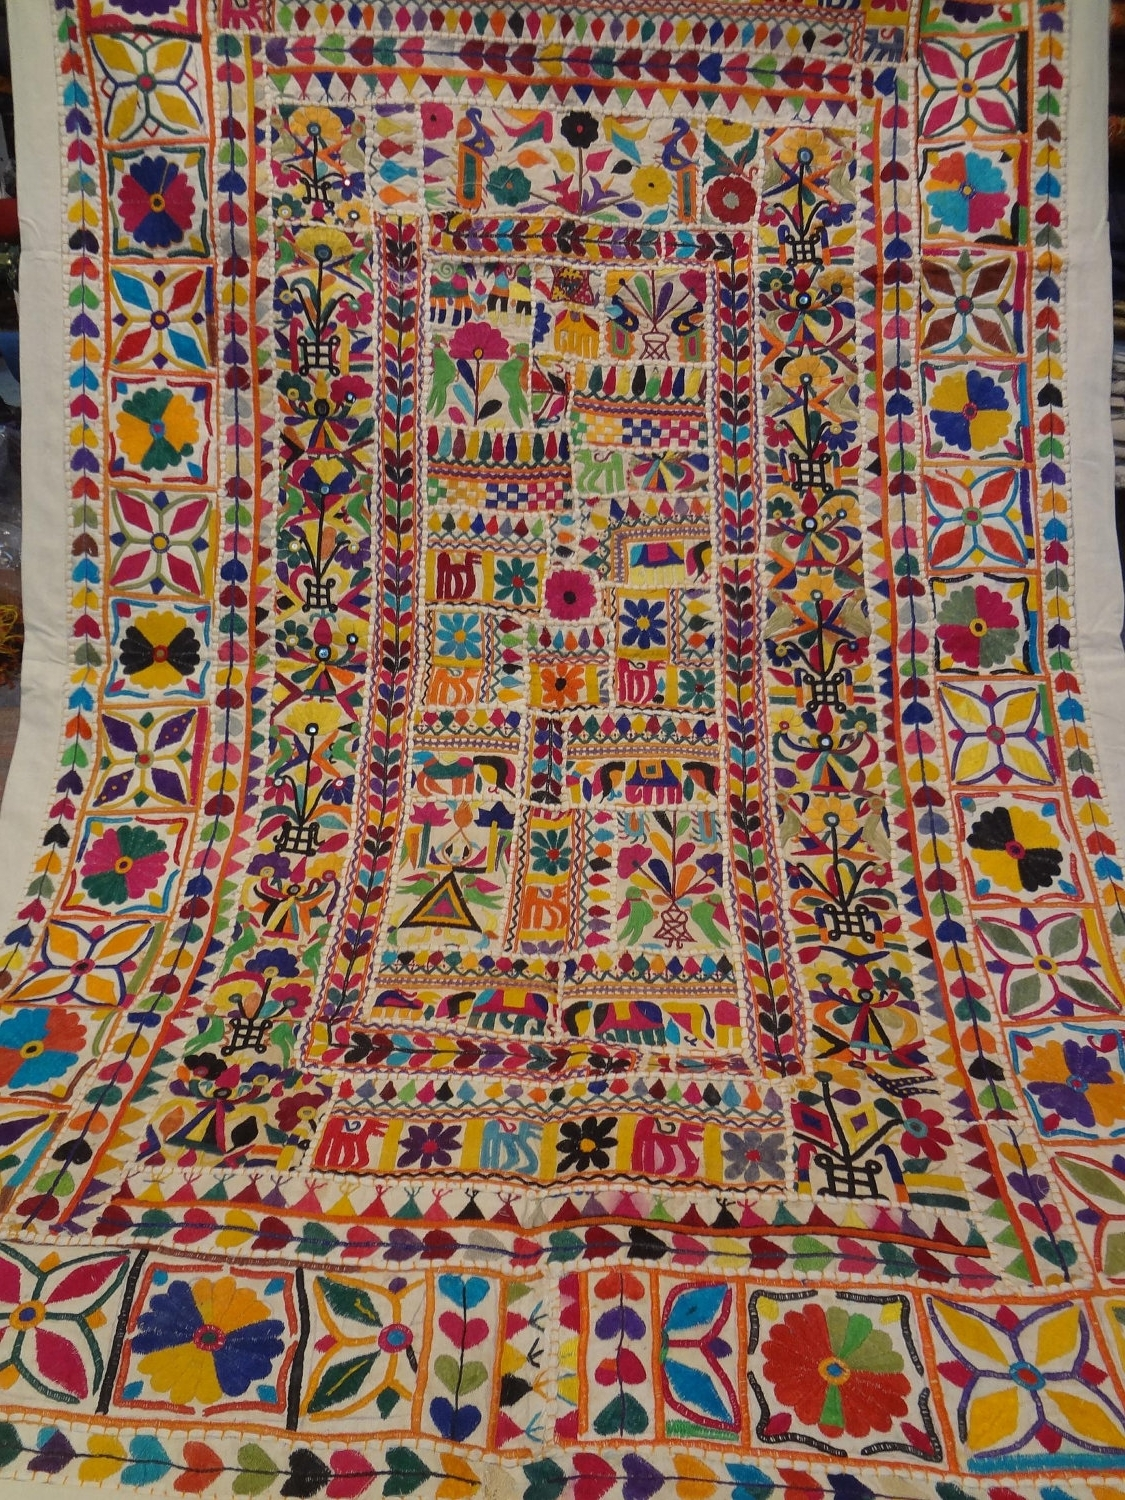 Best And Newest Handmade Old Patchwork Wall Hanging/home Tapestry Made From Old Regarding Indian Fabric Art Wall Hangings (View 1 of 15)